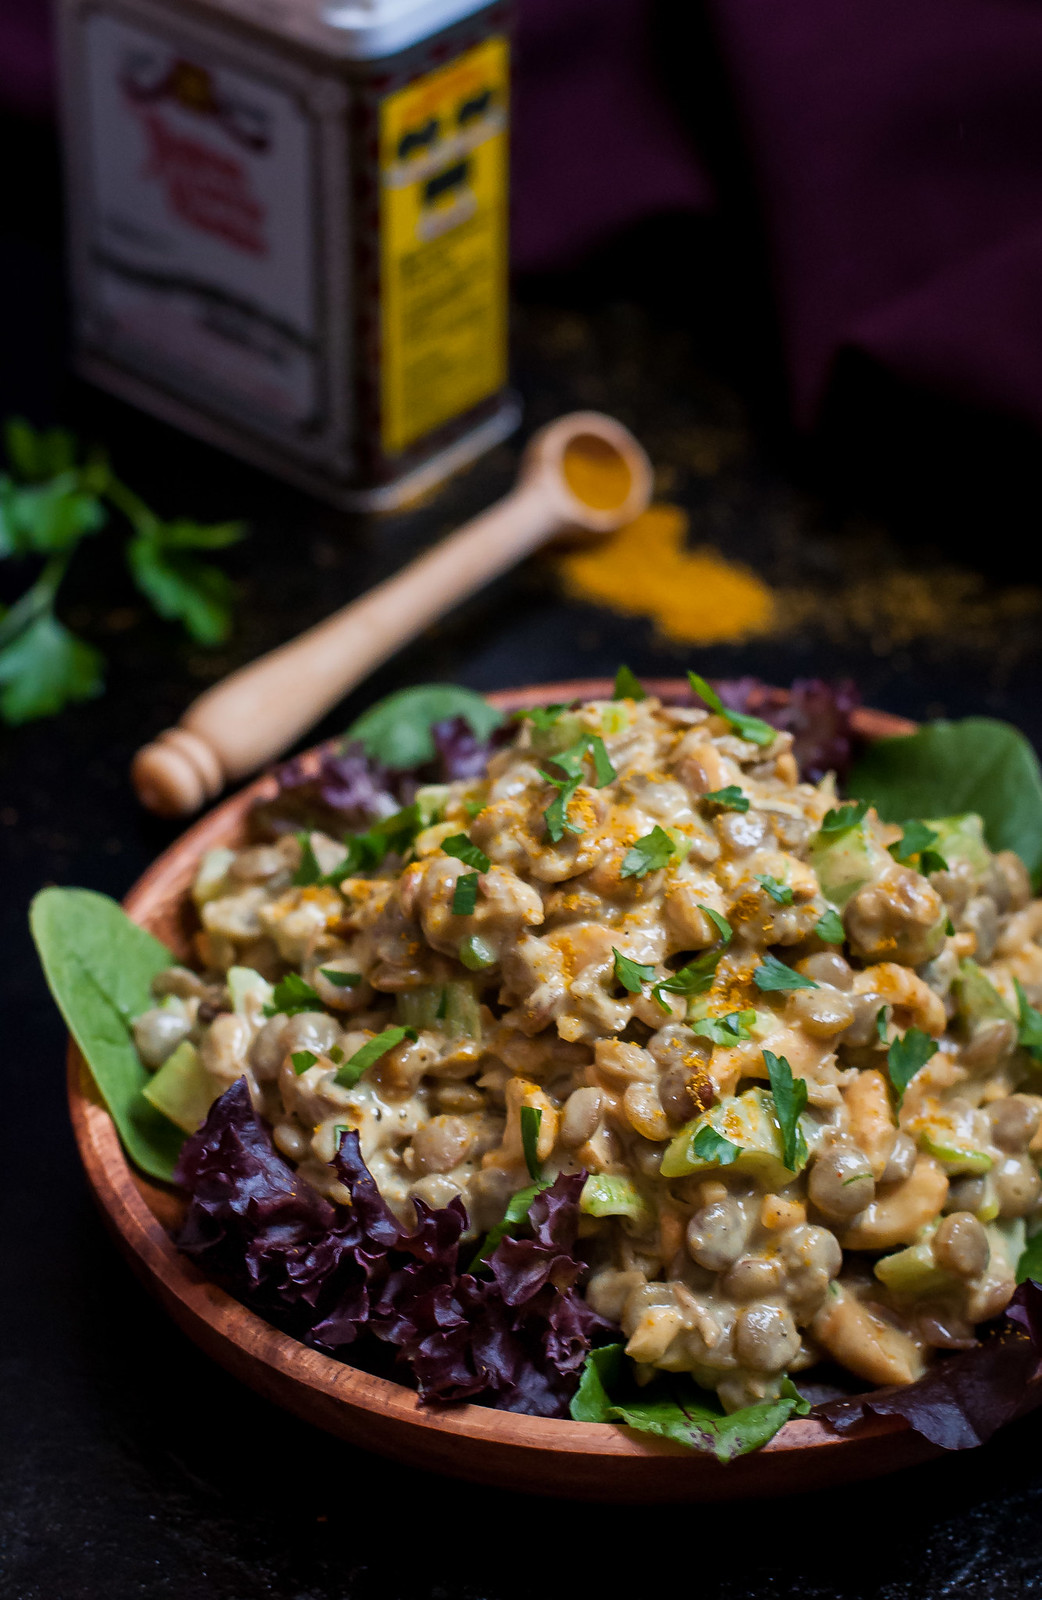 Main dish curried lentil salad - 30 minutes, vegan, and gluten free